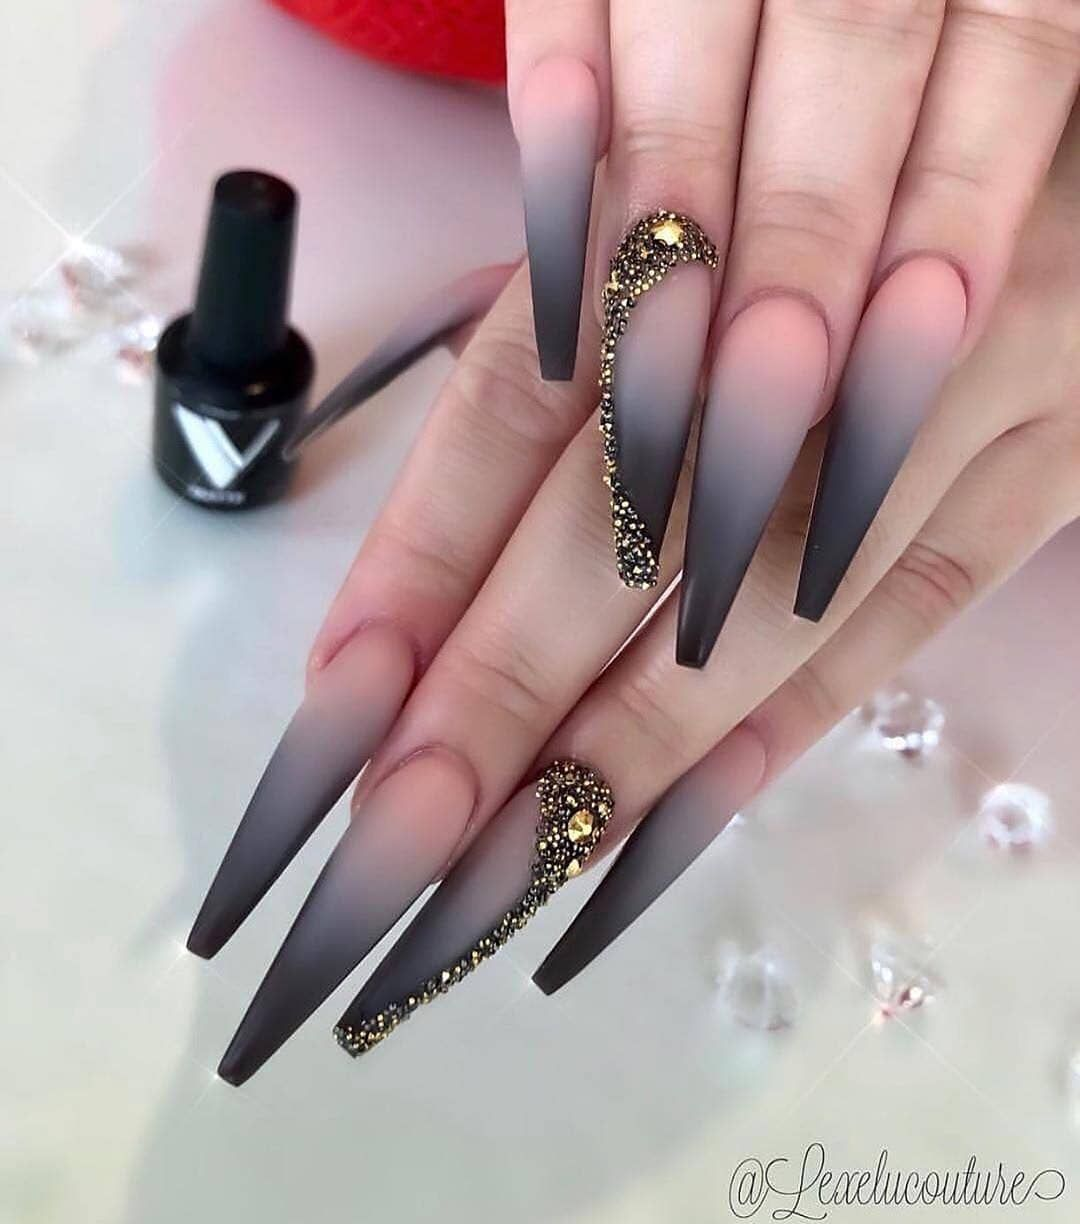 Best Stylish Nails In World On Instagram Follow Us Beauty Nails Inspo Follow Us Stylishnaails Stiletto Nails Designs Black Ombre Nails Casual Nails